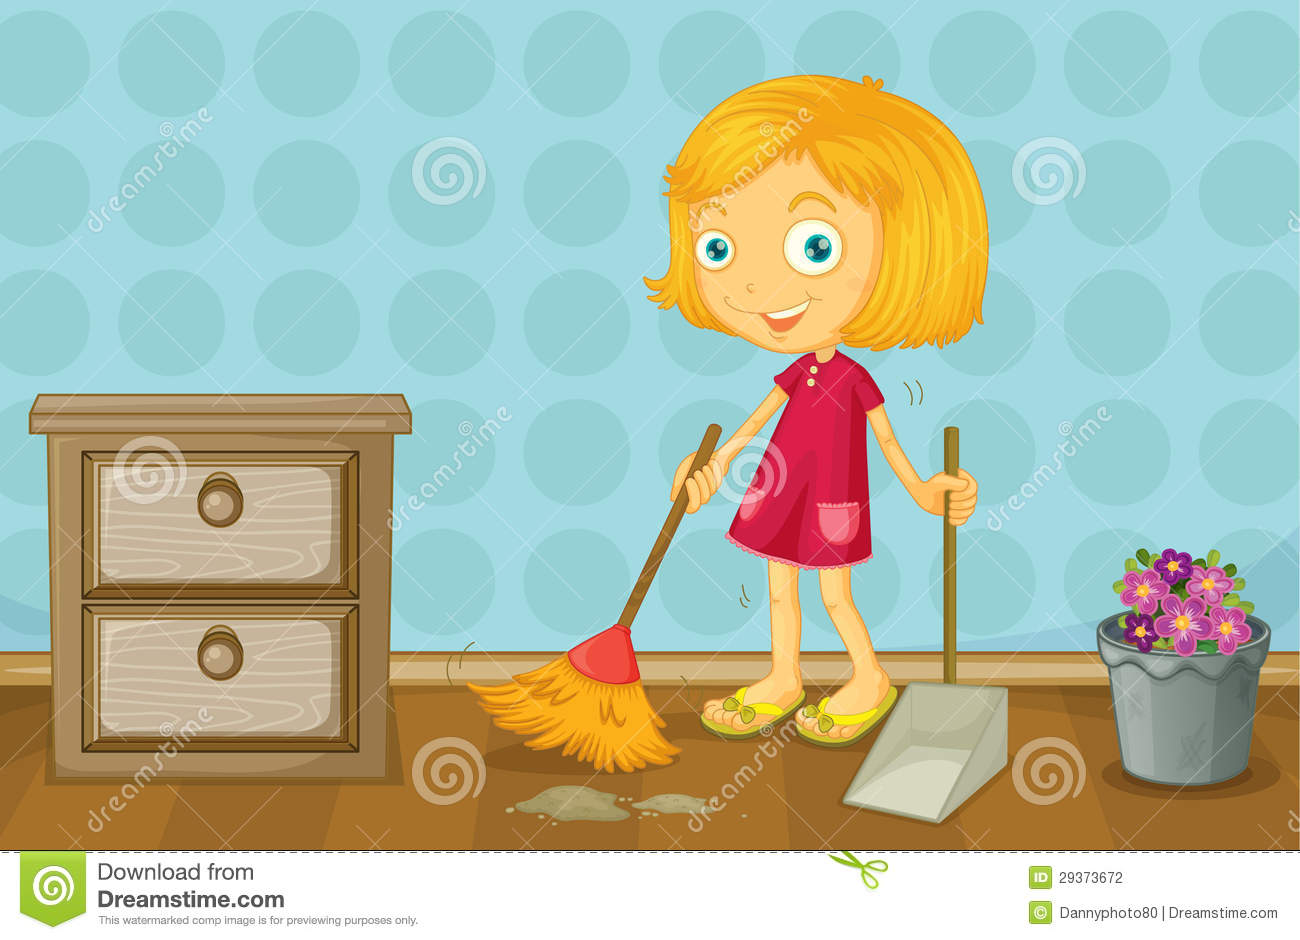 A girl cleaning a room stock illustration. Illustration of cartoon ...